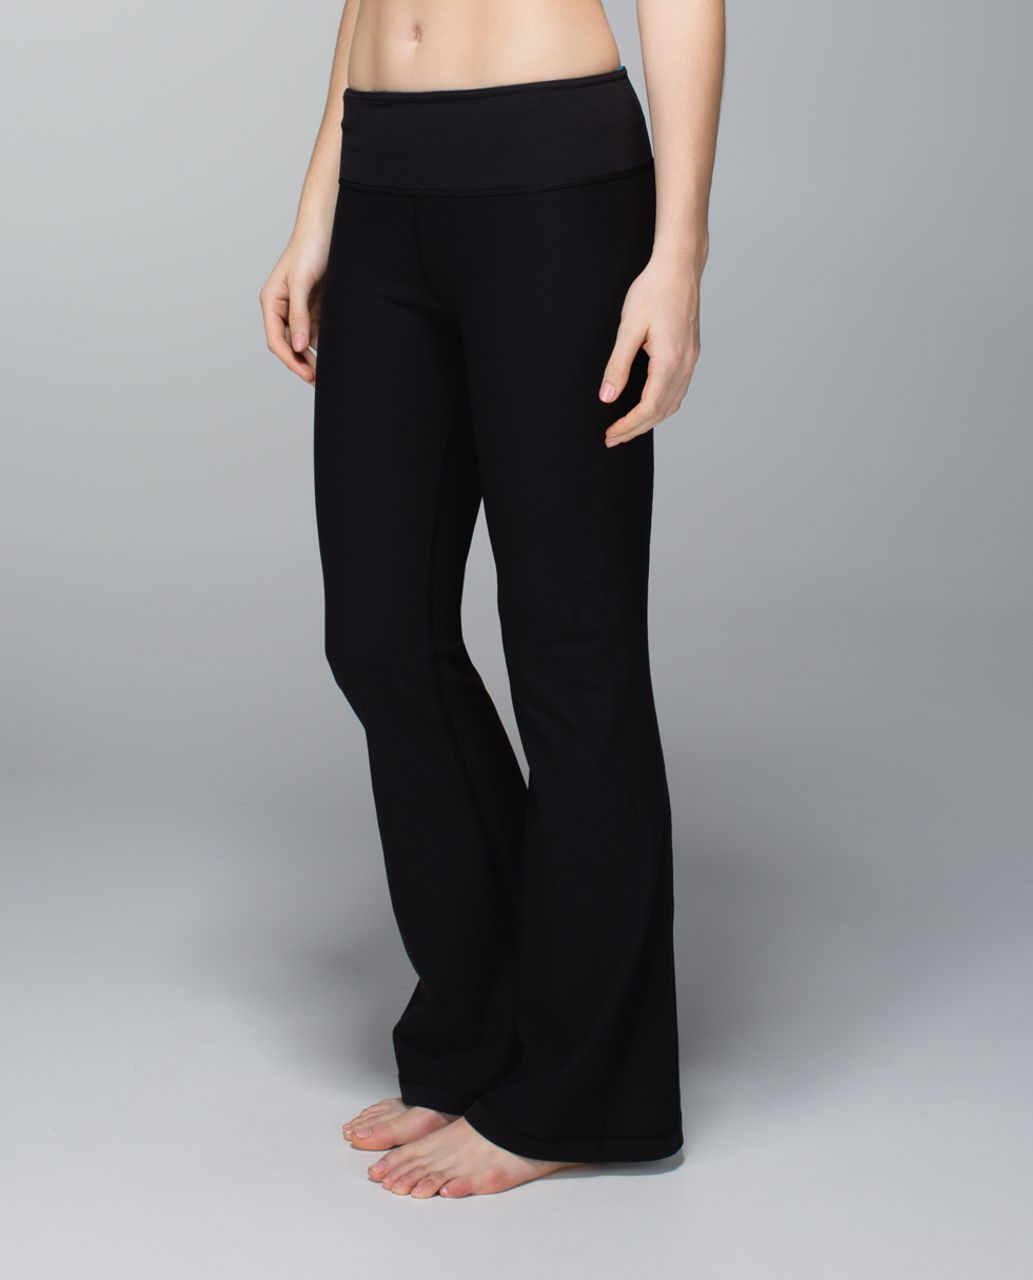 Lululemon Groove Pant (Tall) *Full-On Luon - Black / Quilt Winter 13-07